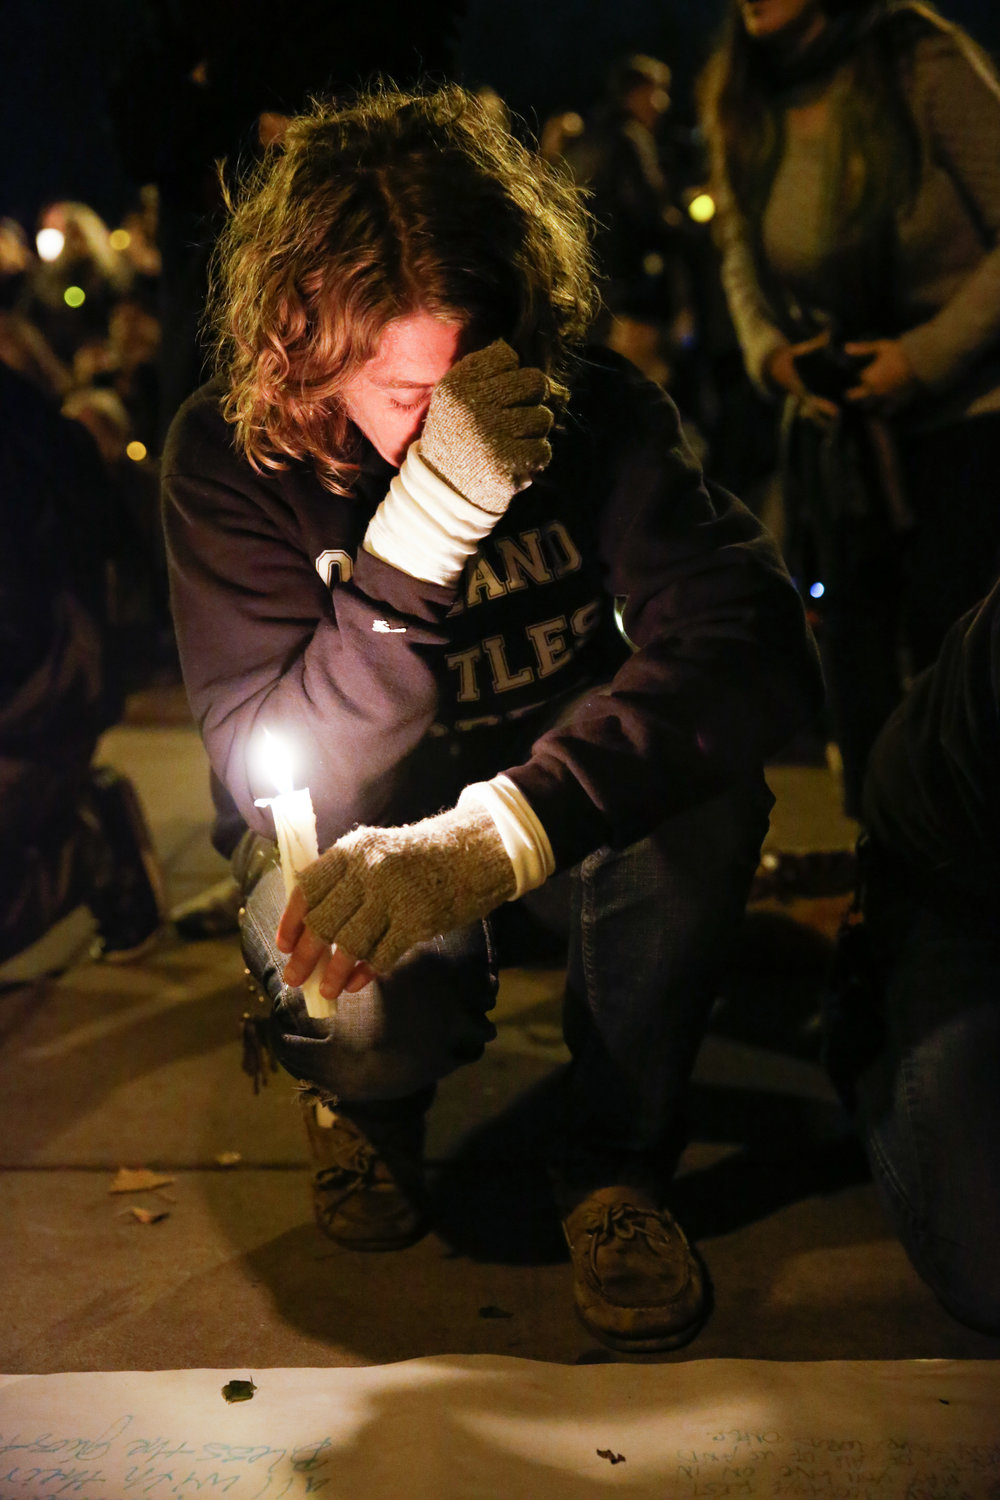 A women holds back tears at a vigil for the victims of the fatal warehouse fire during a vigil at Lake Merritt Pergola in Oakland, California, U.S. December 5, 2016.